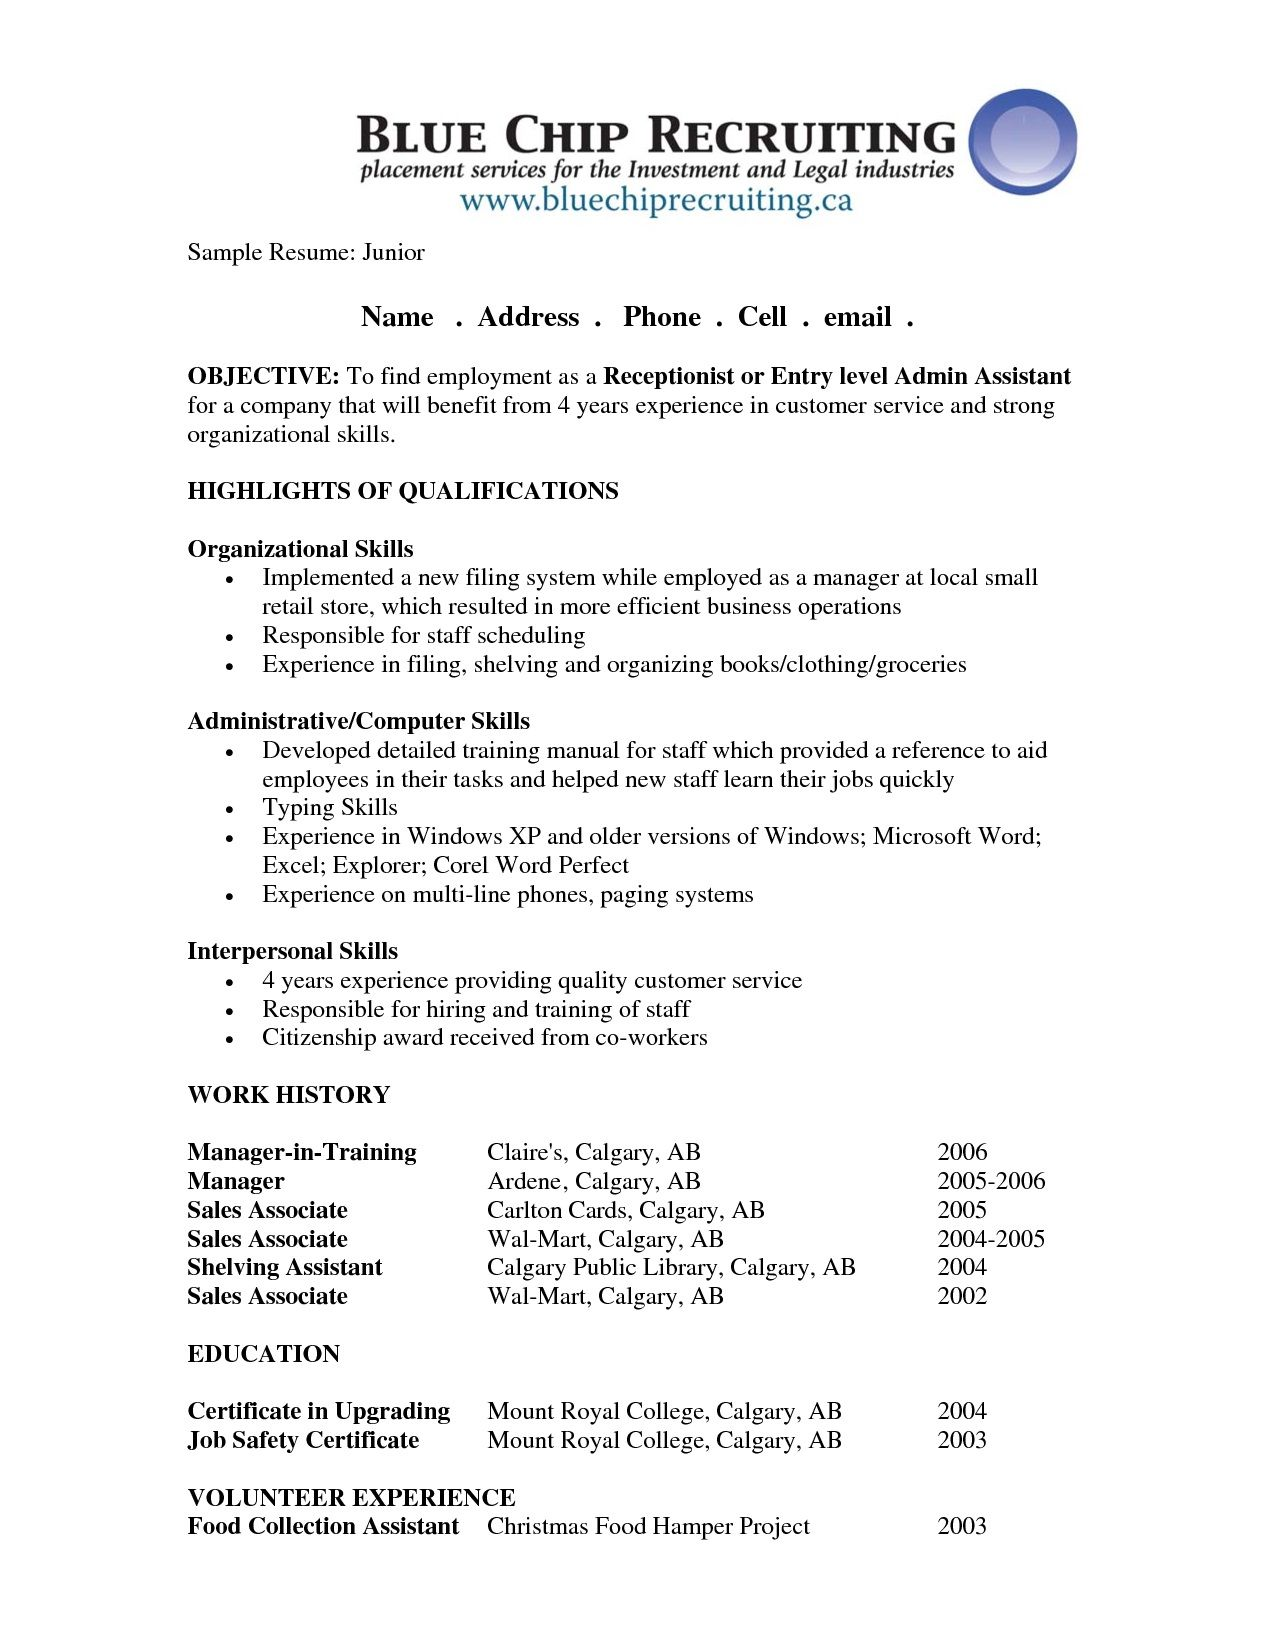 Receptionist Resume Objective Sample - http://jobresumesample.com ...